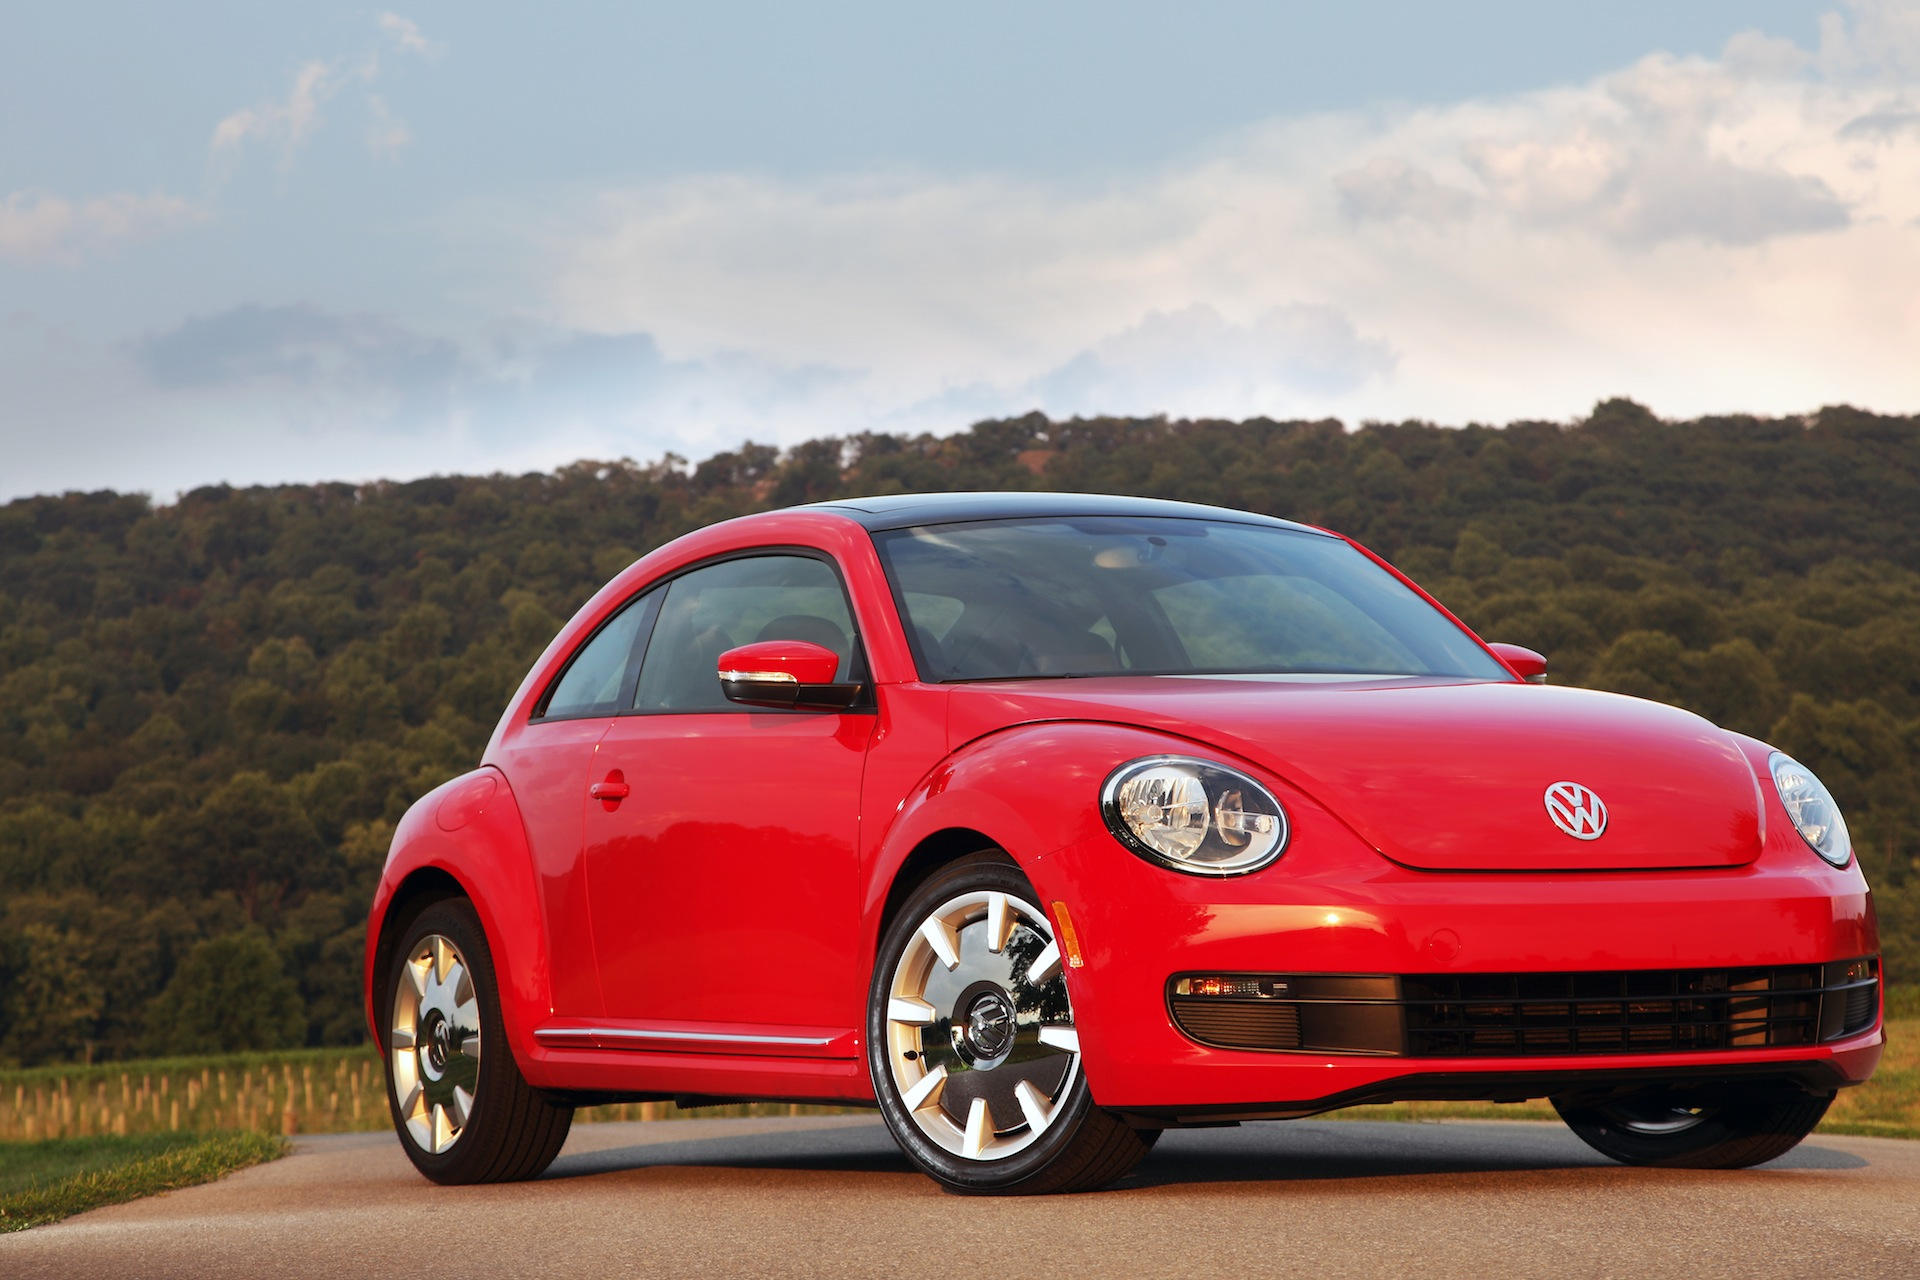 vw beetle range to expand in 2019 as sub brand to rival mini report. Black Bedroom Furniture Sets. Home Design Ideas